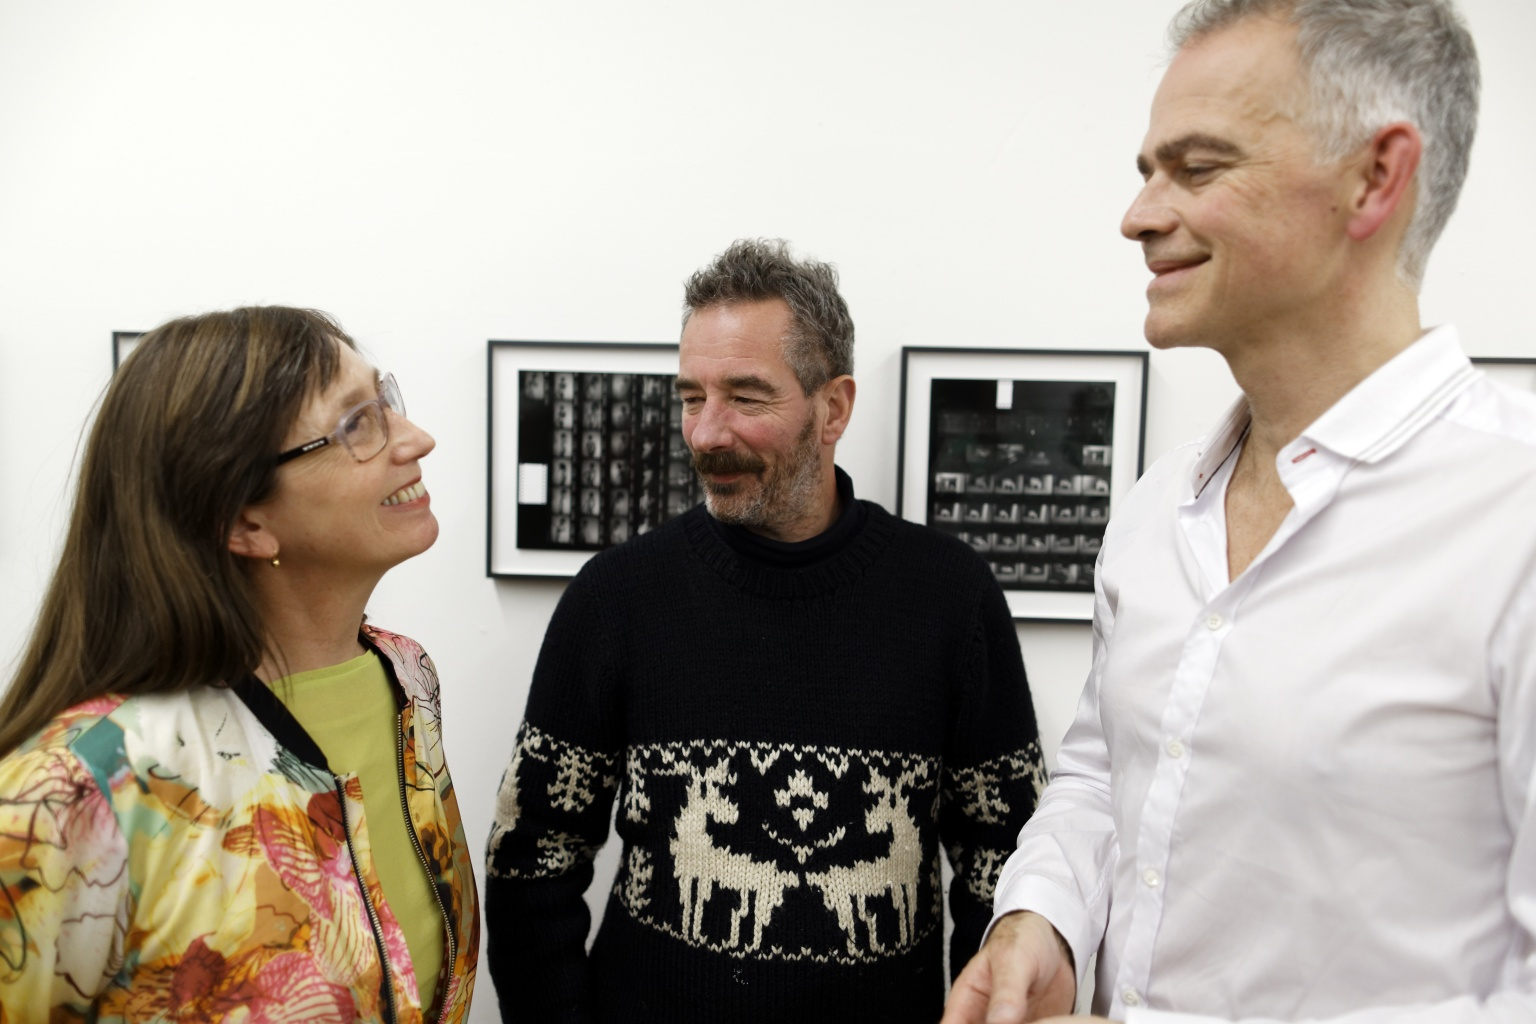 Dirk Jan Jager, Renée Kool and Simon Ferdinando<br>